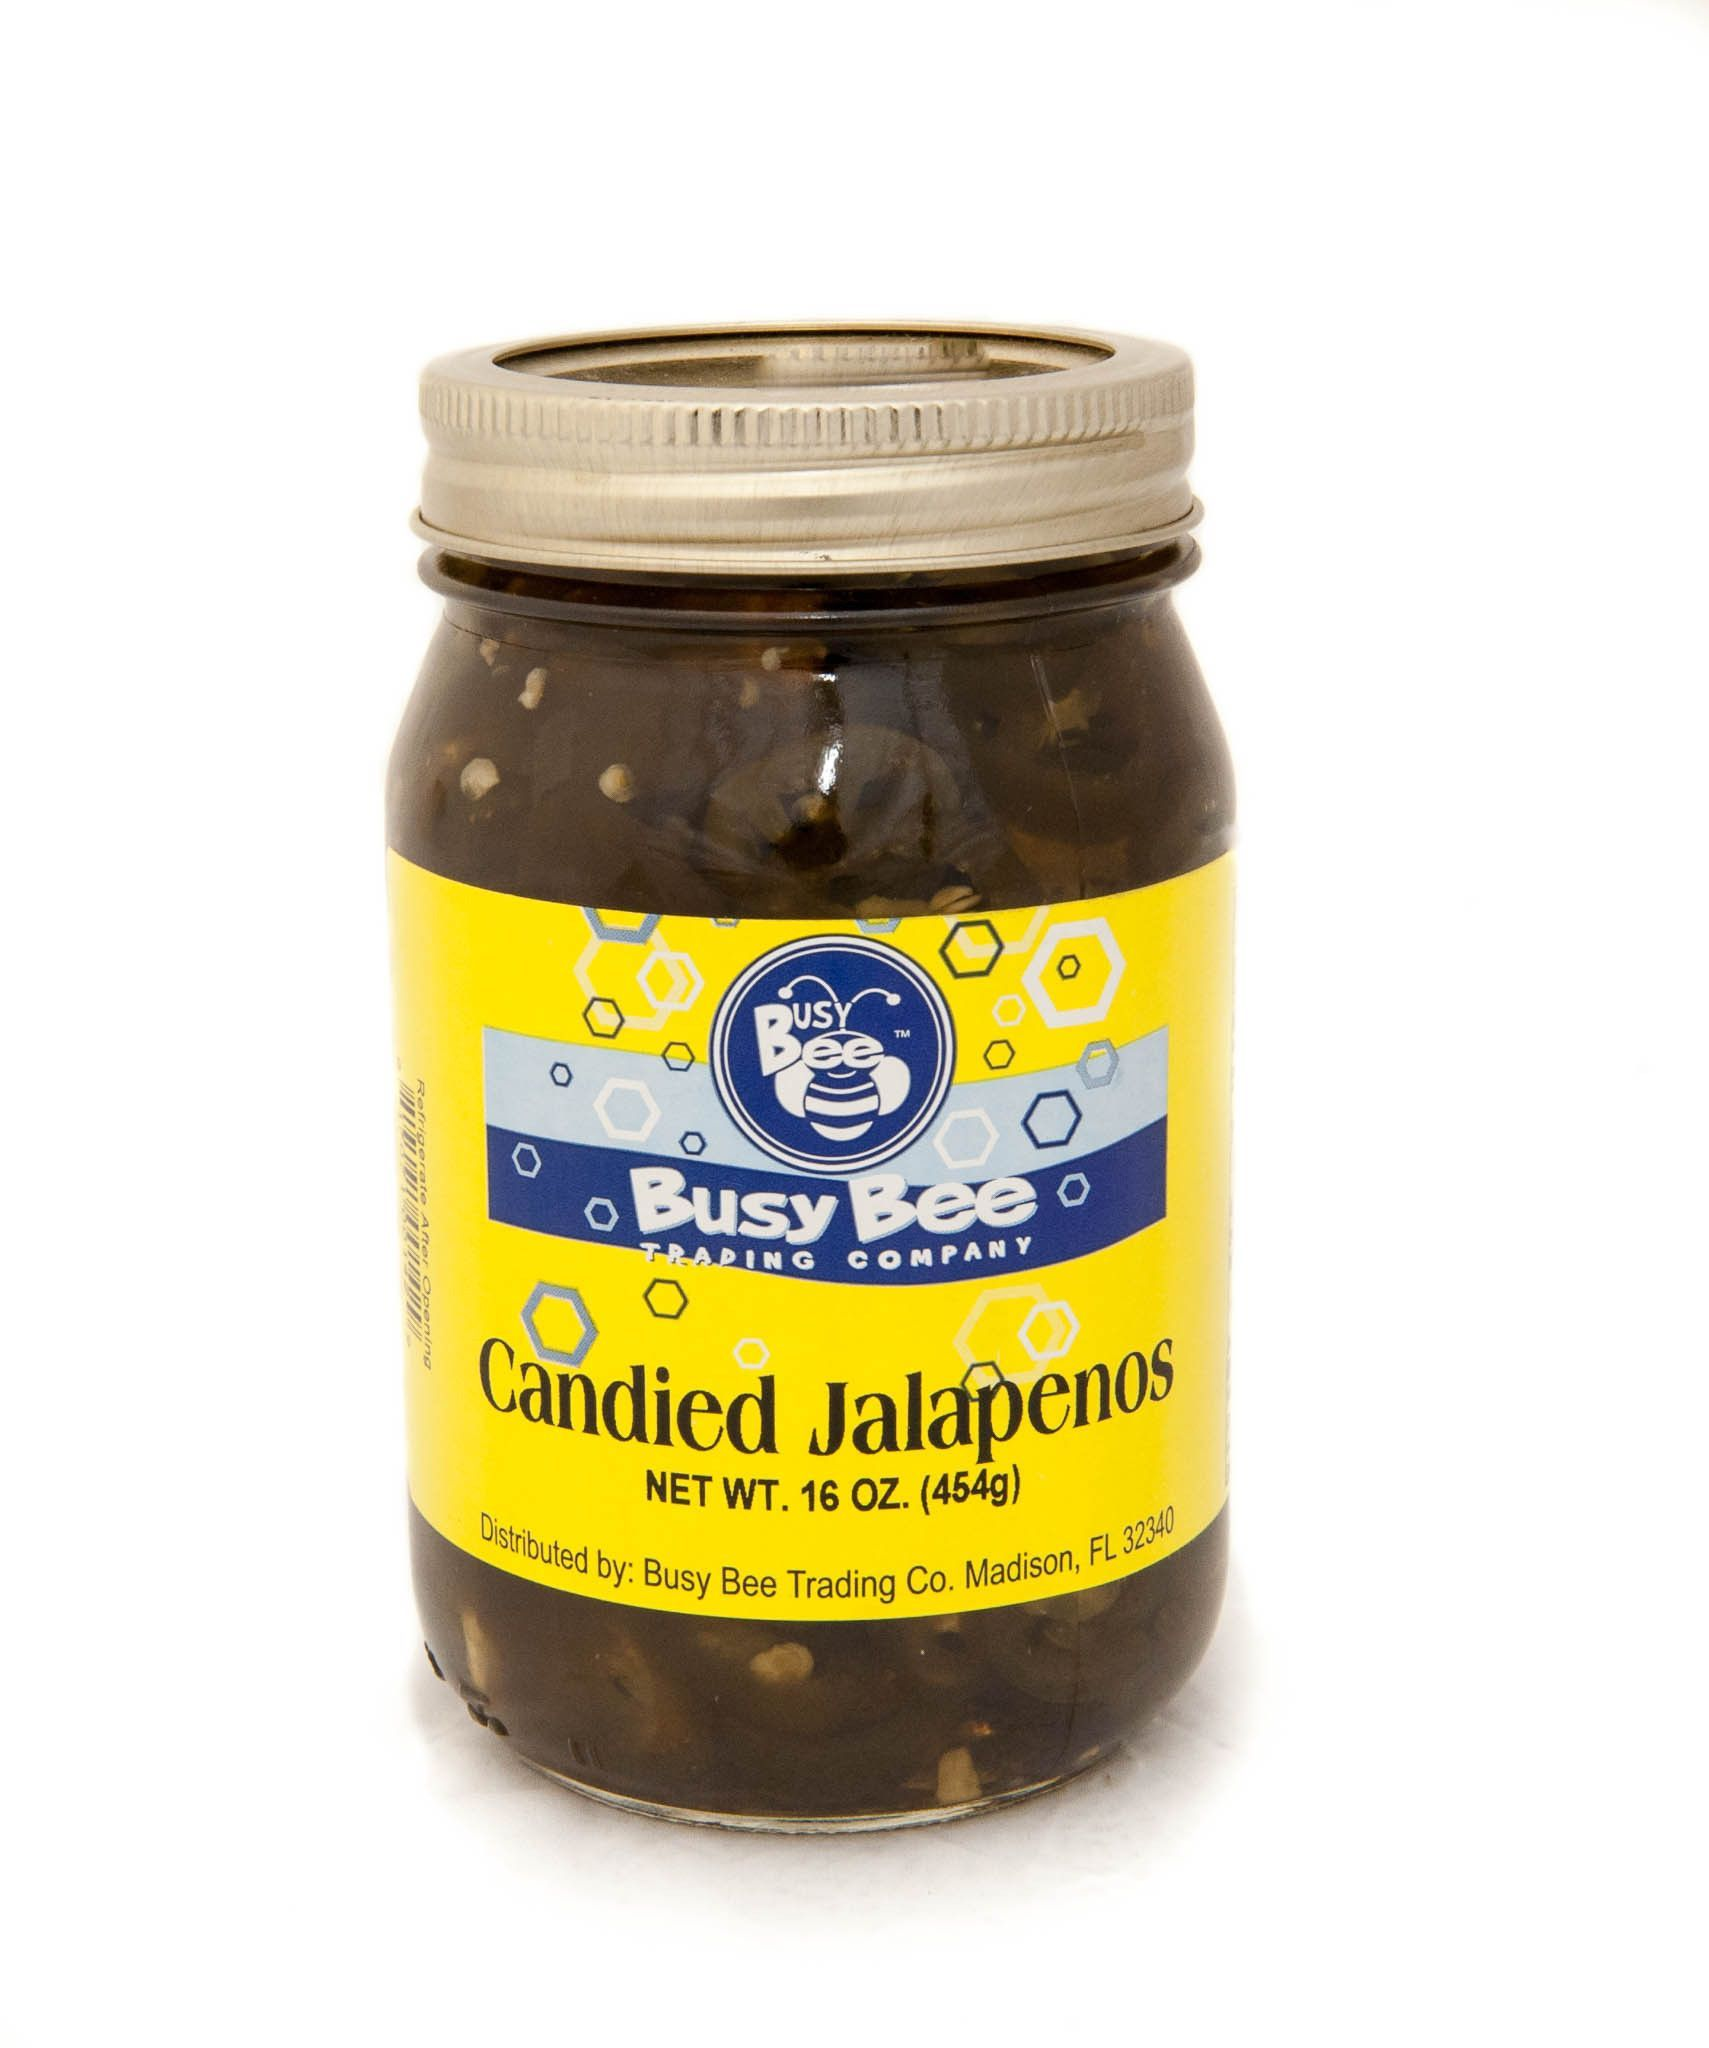 Sweet and spicy all in one! Candied Jalapenos